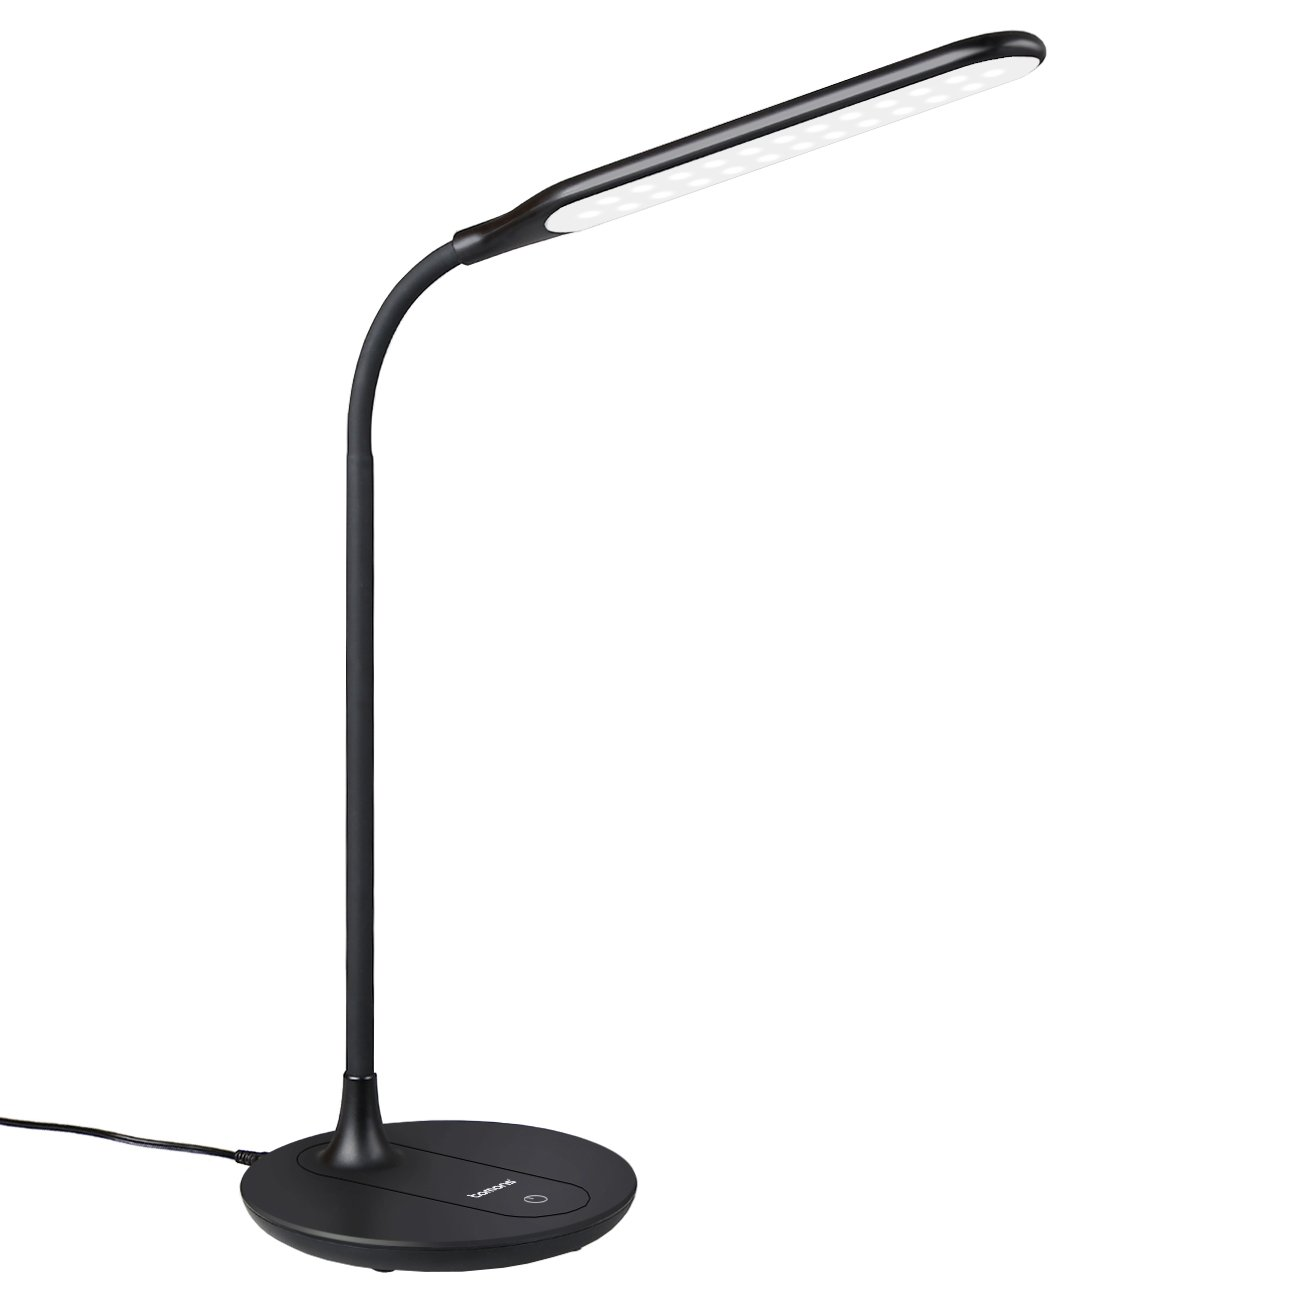 Tomons LED Desk Lamp, Office Lamp With USA Charging Port, Gooseneck Design, 360° Rotation Adjustable, 3 Brightness Levels - DL2002 by tomons